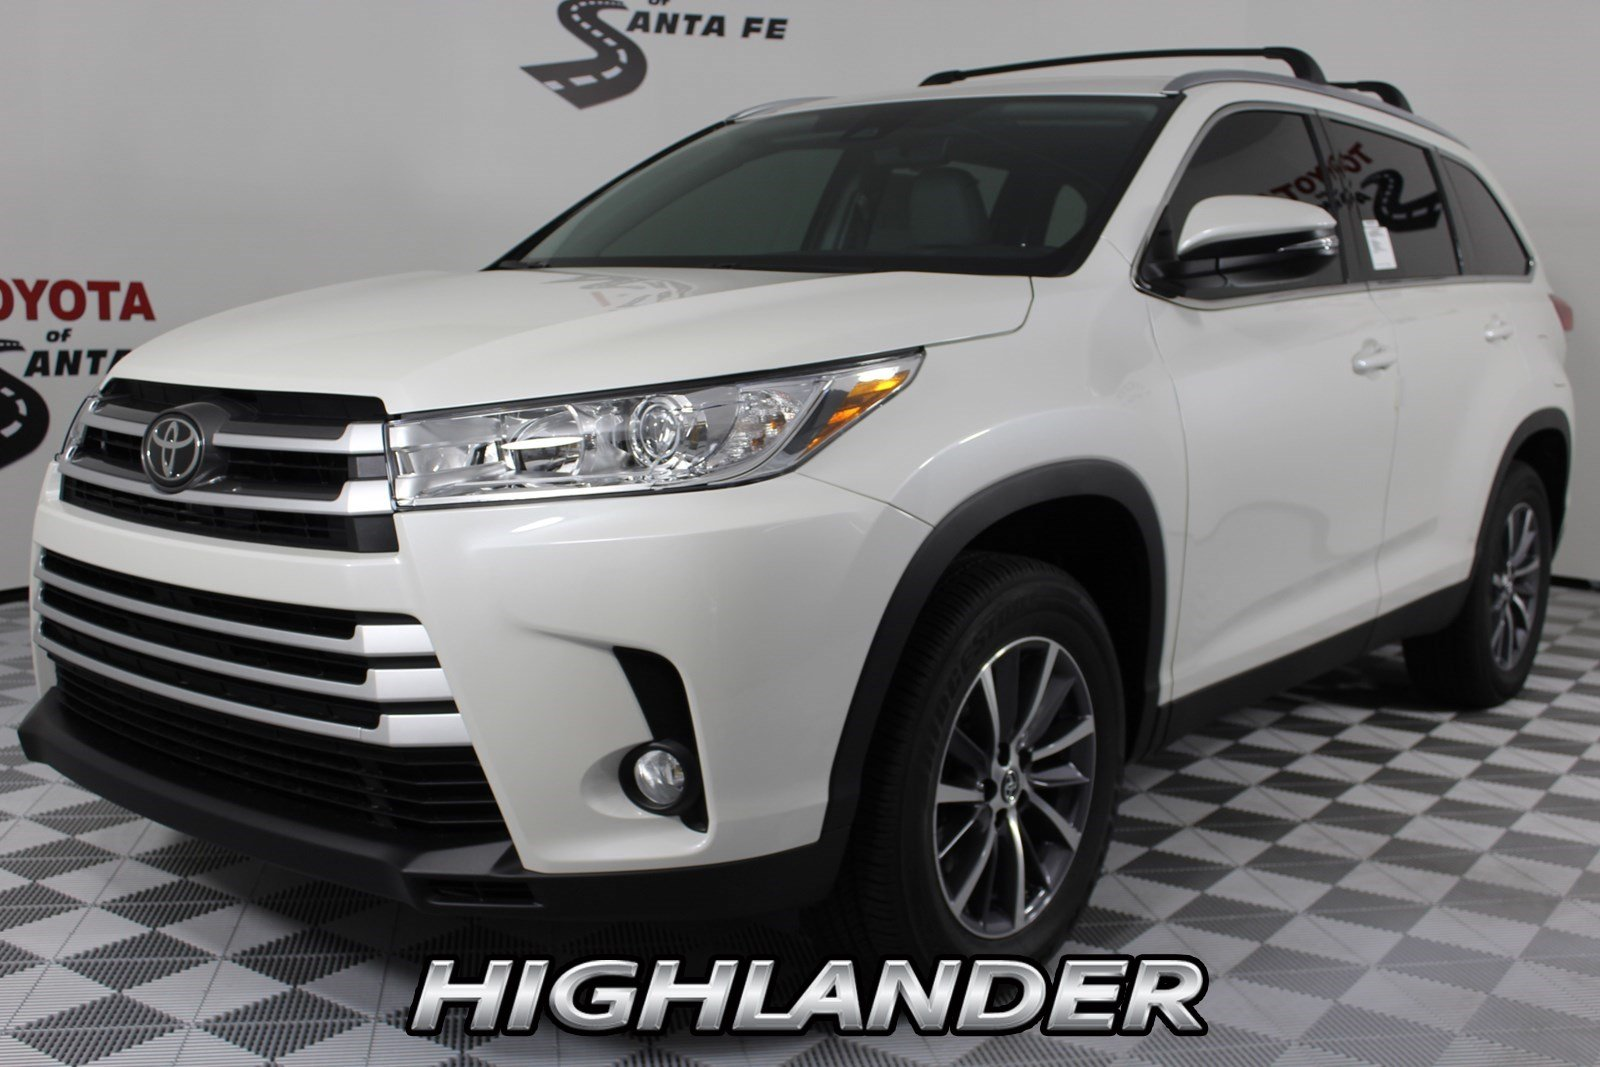 Toyota Highlander Owners Manual: Installation with latch system